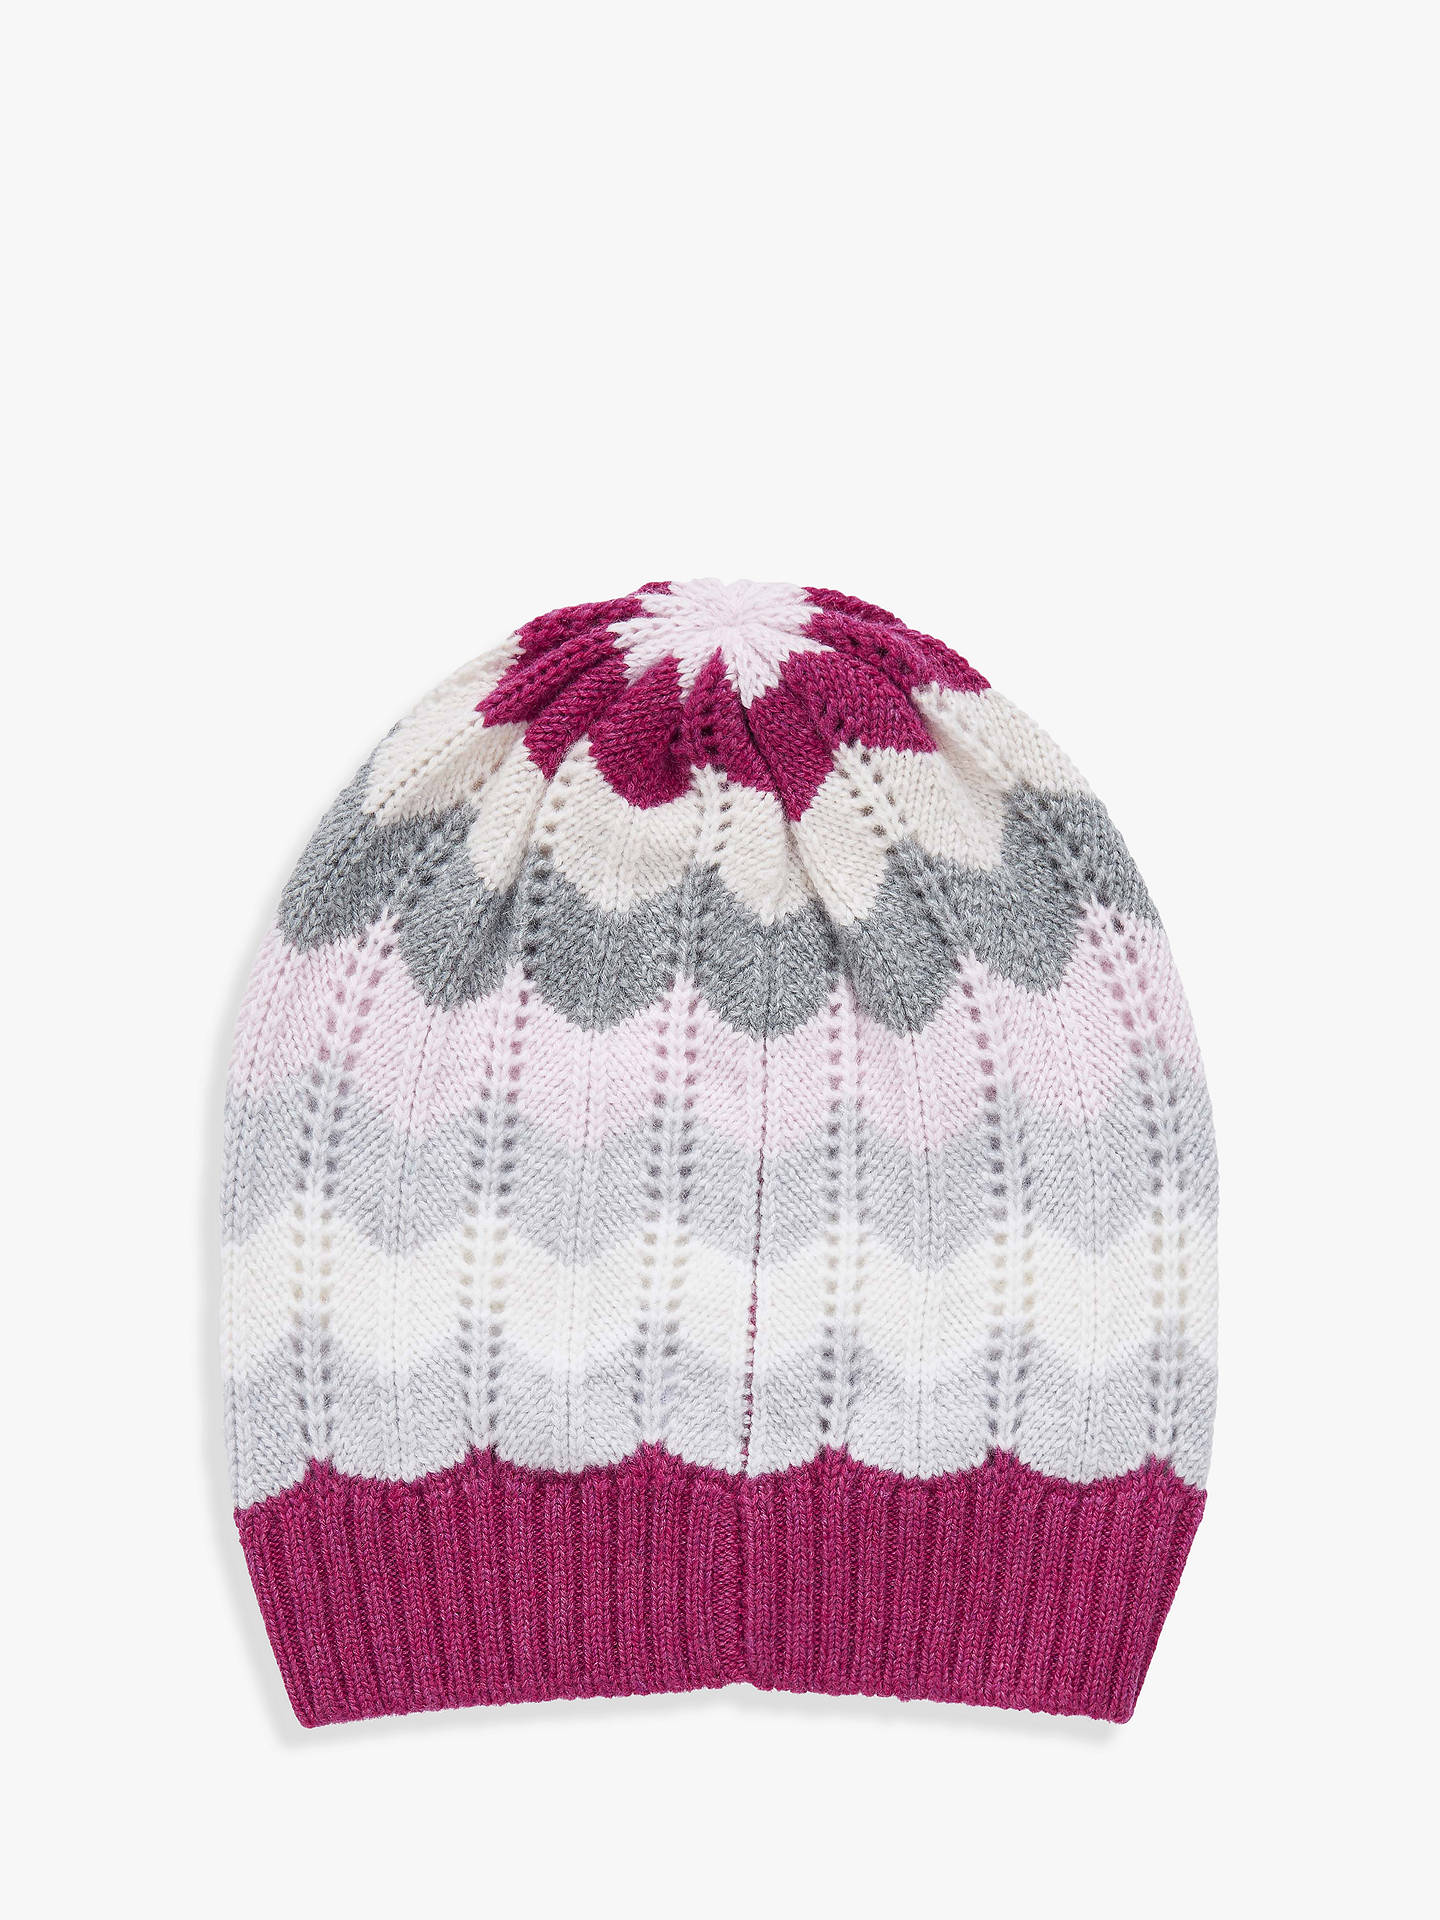 Buy Brora Cashmere Wave Knit Beanie, One Size, Tourmaline Online at johnlewis.com